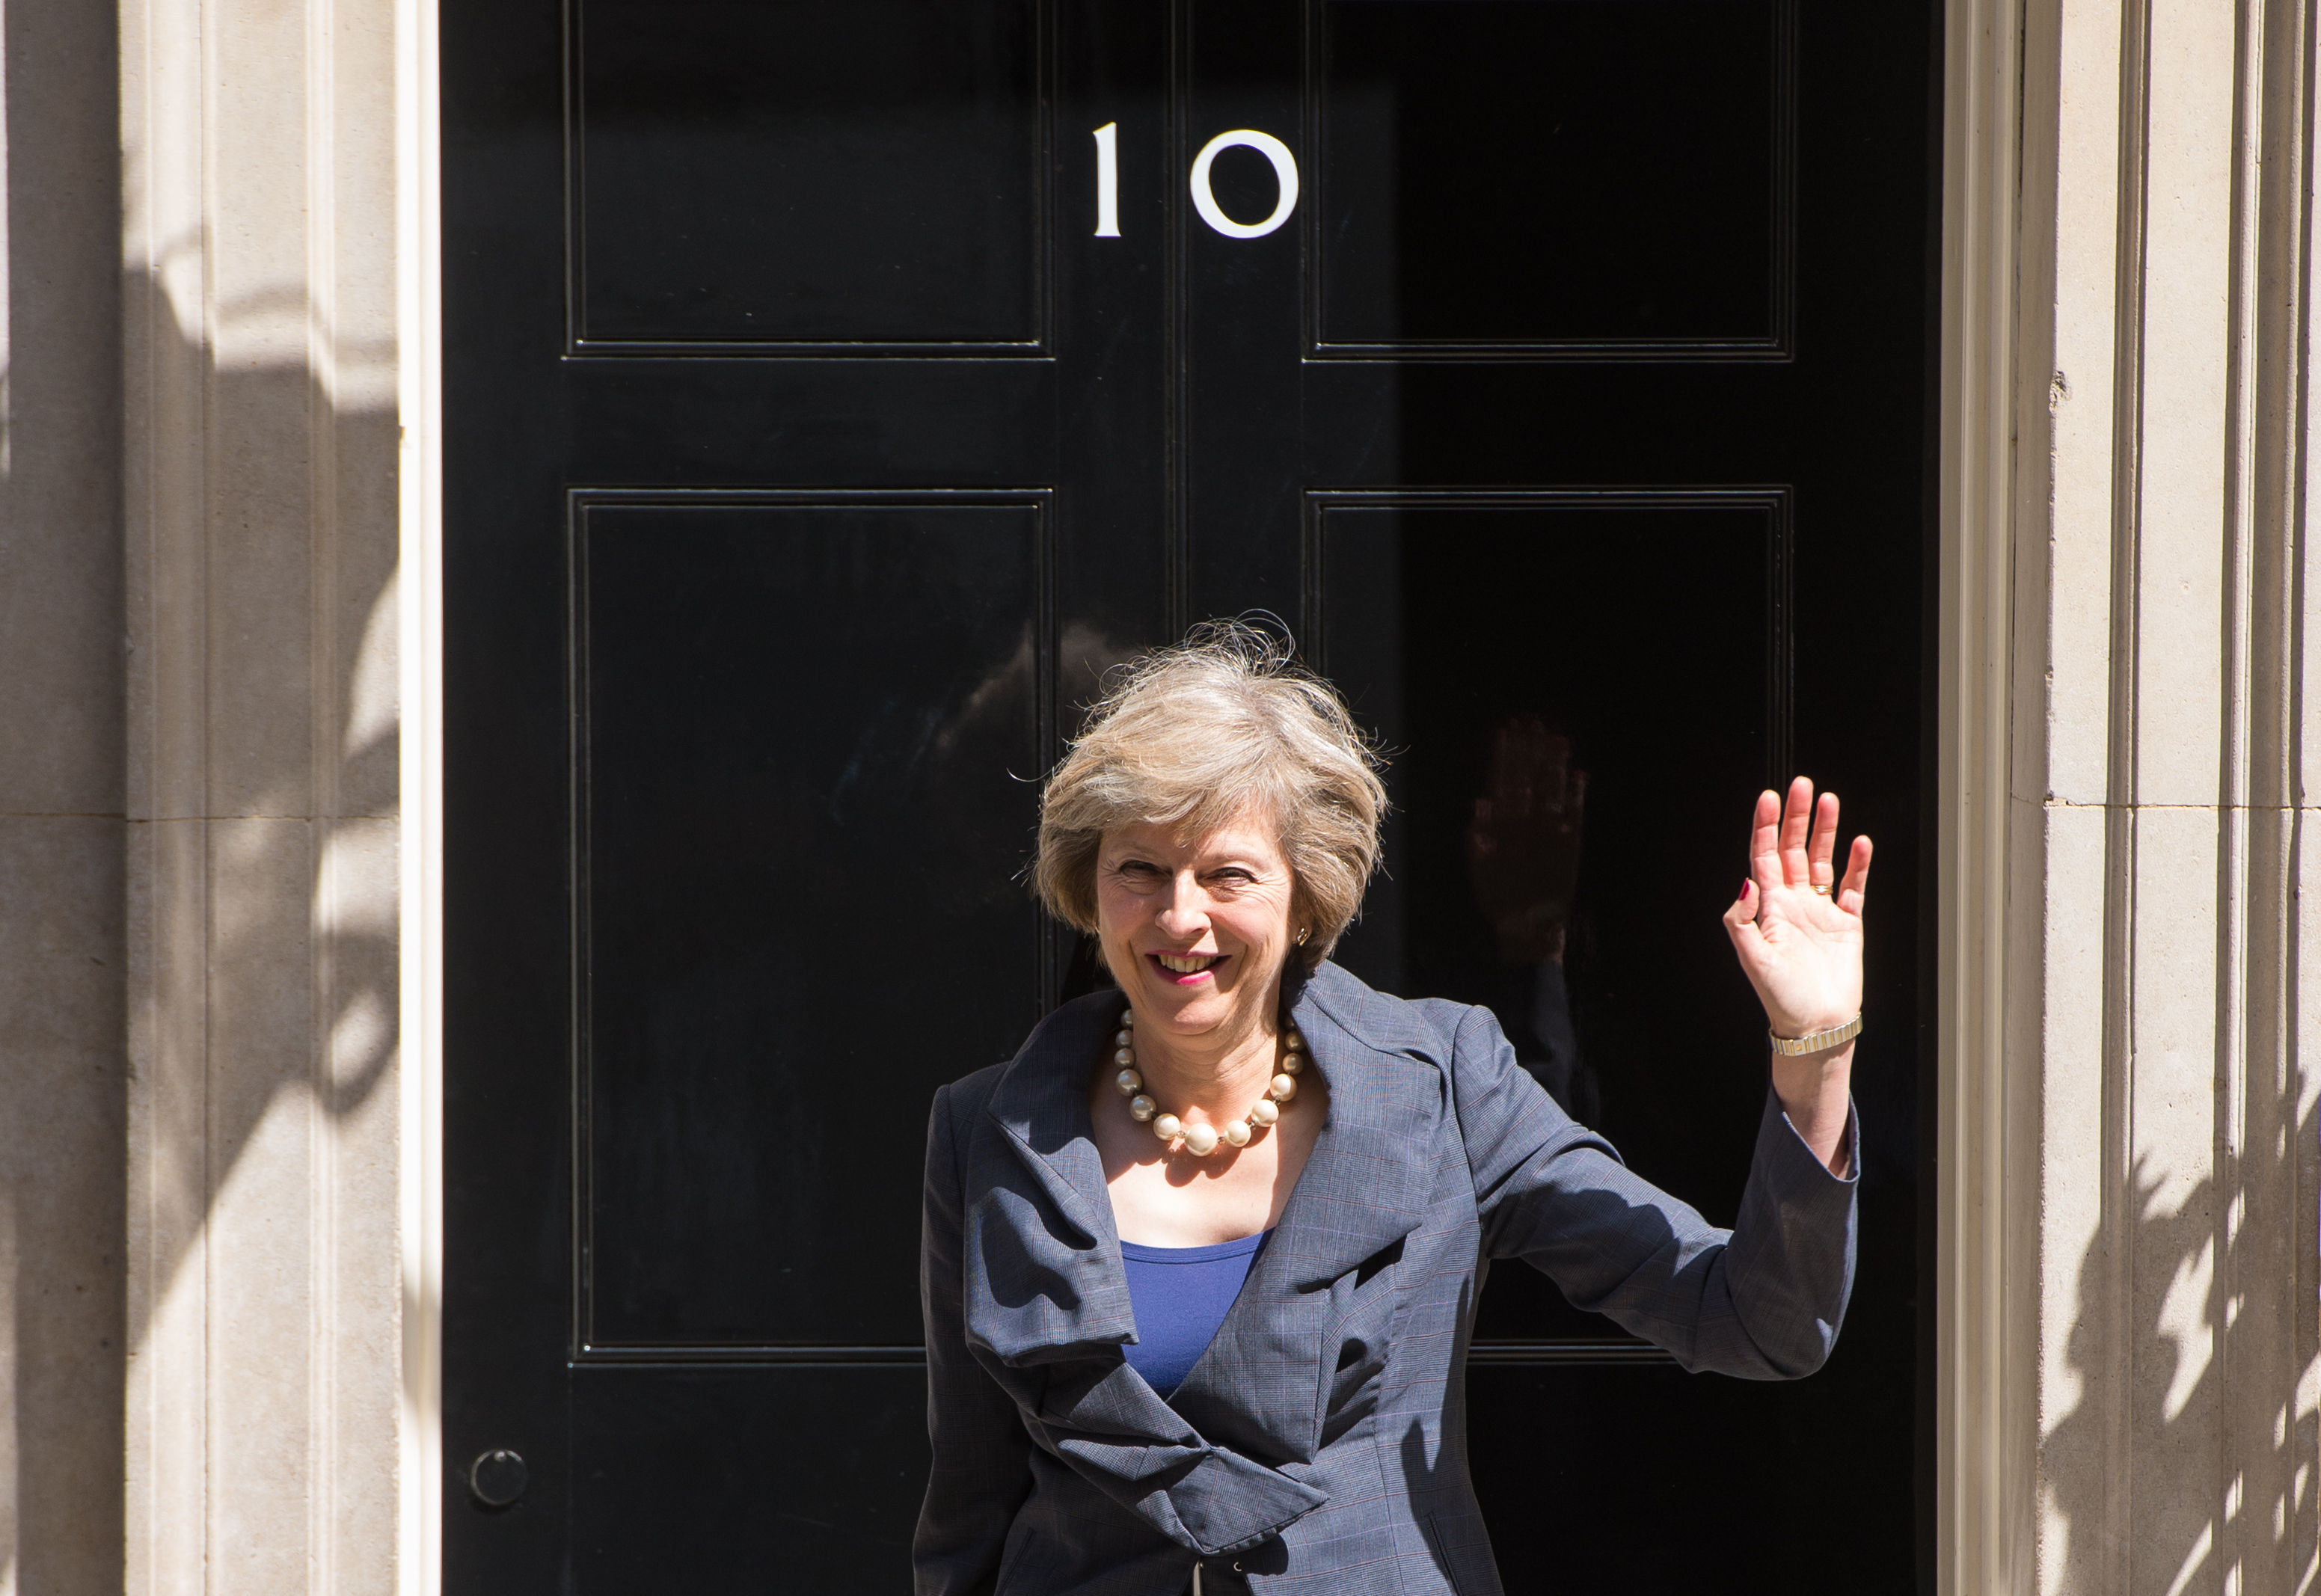 PM Theresa May Steps Down as the Leader of the Conservative Party